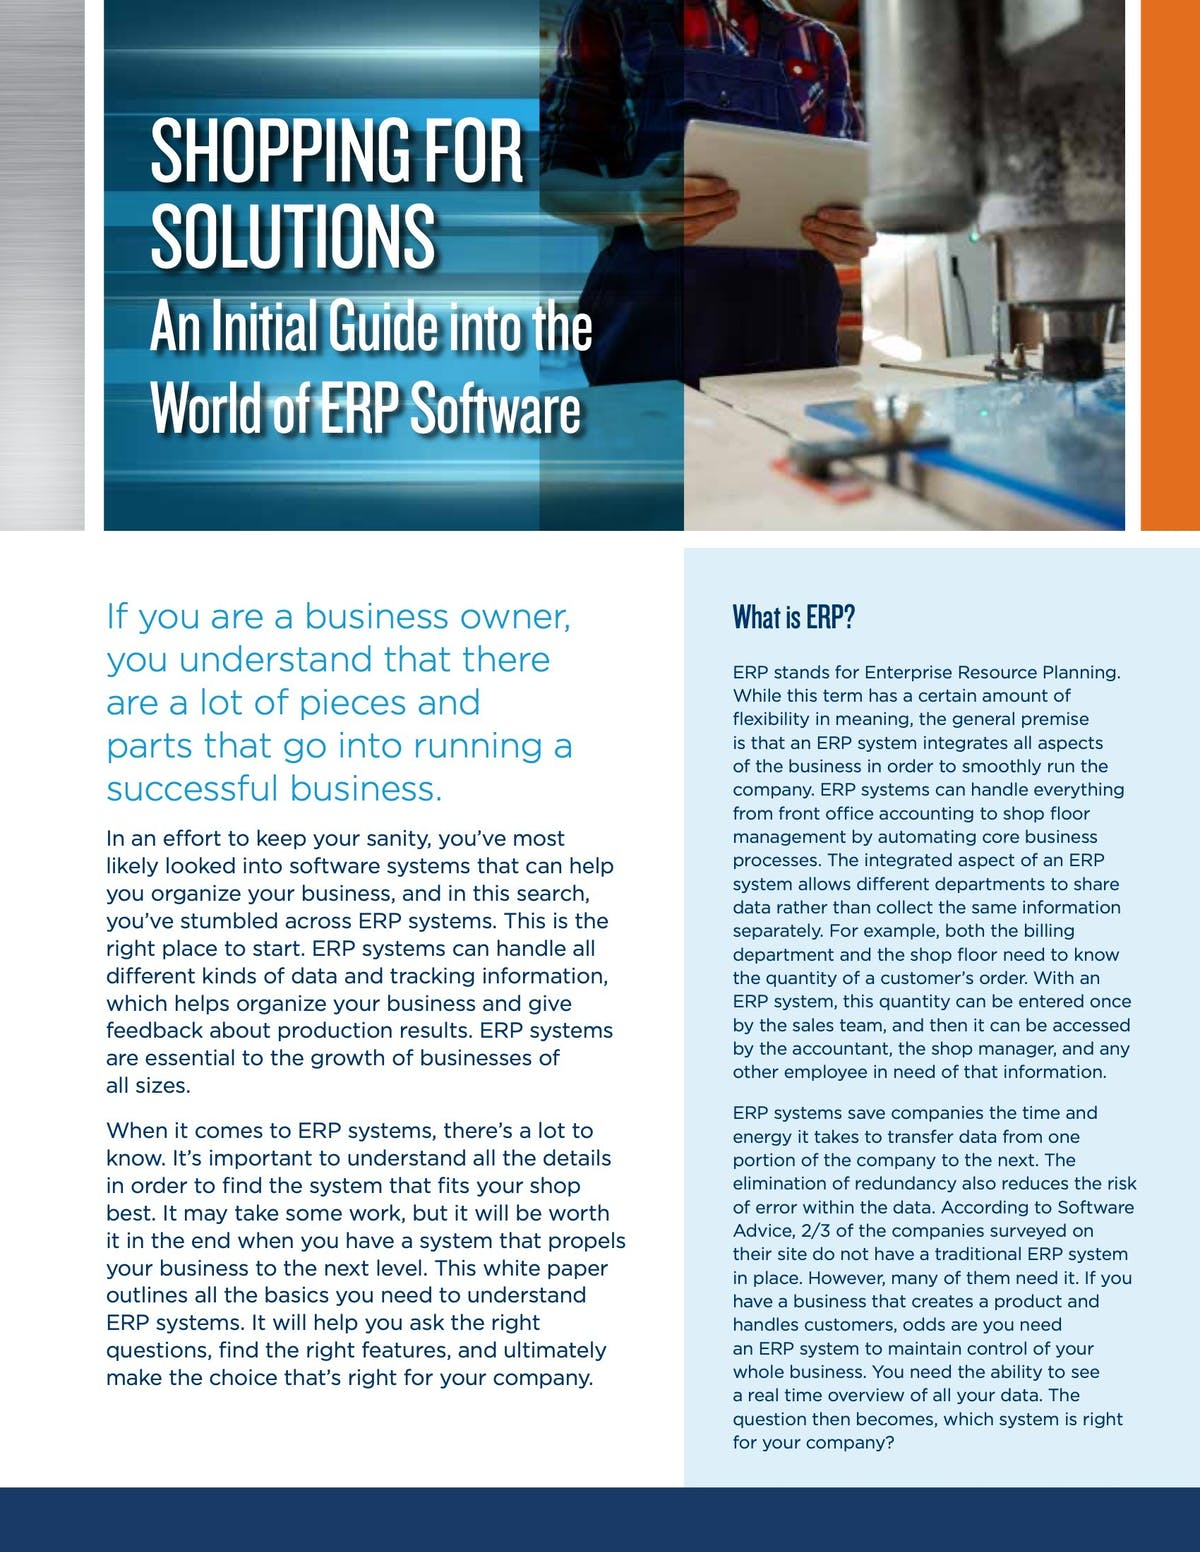 E2 Shop System White Paper - Shopping for Solutions: An Initial Guide into the World of ERP Software